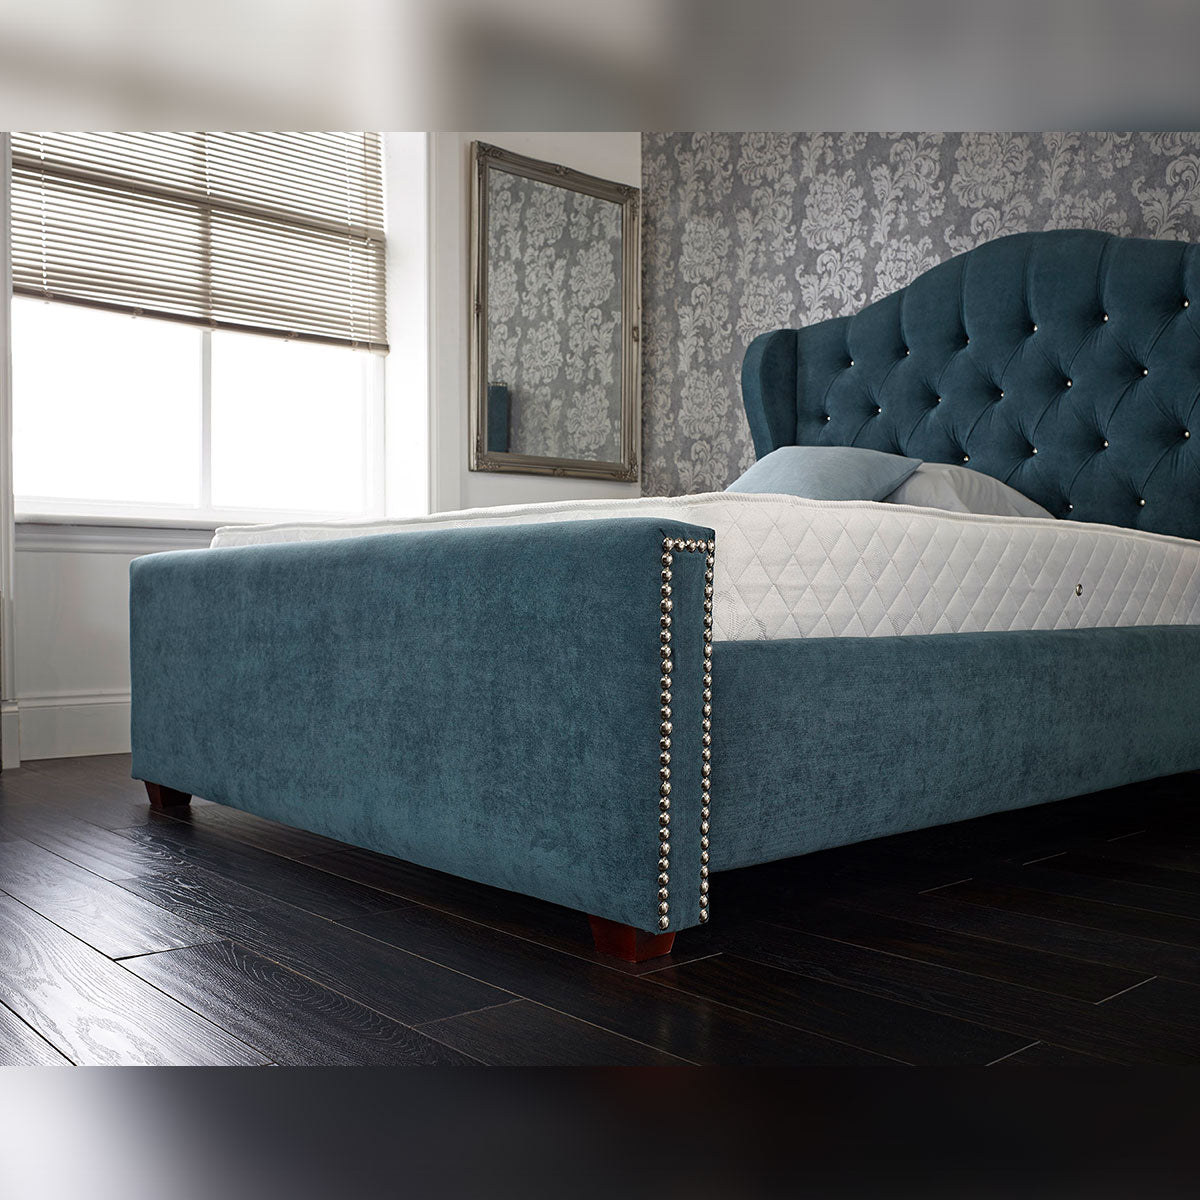 Amazon Super King Size 6' Bed